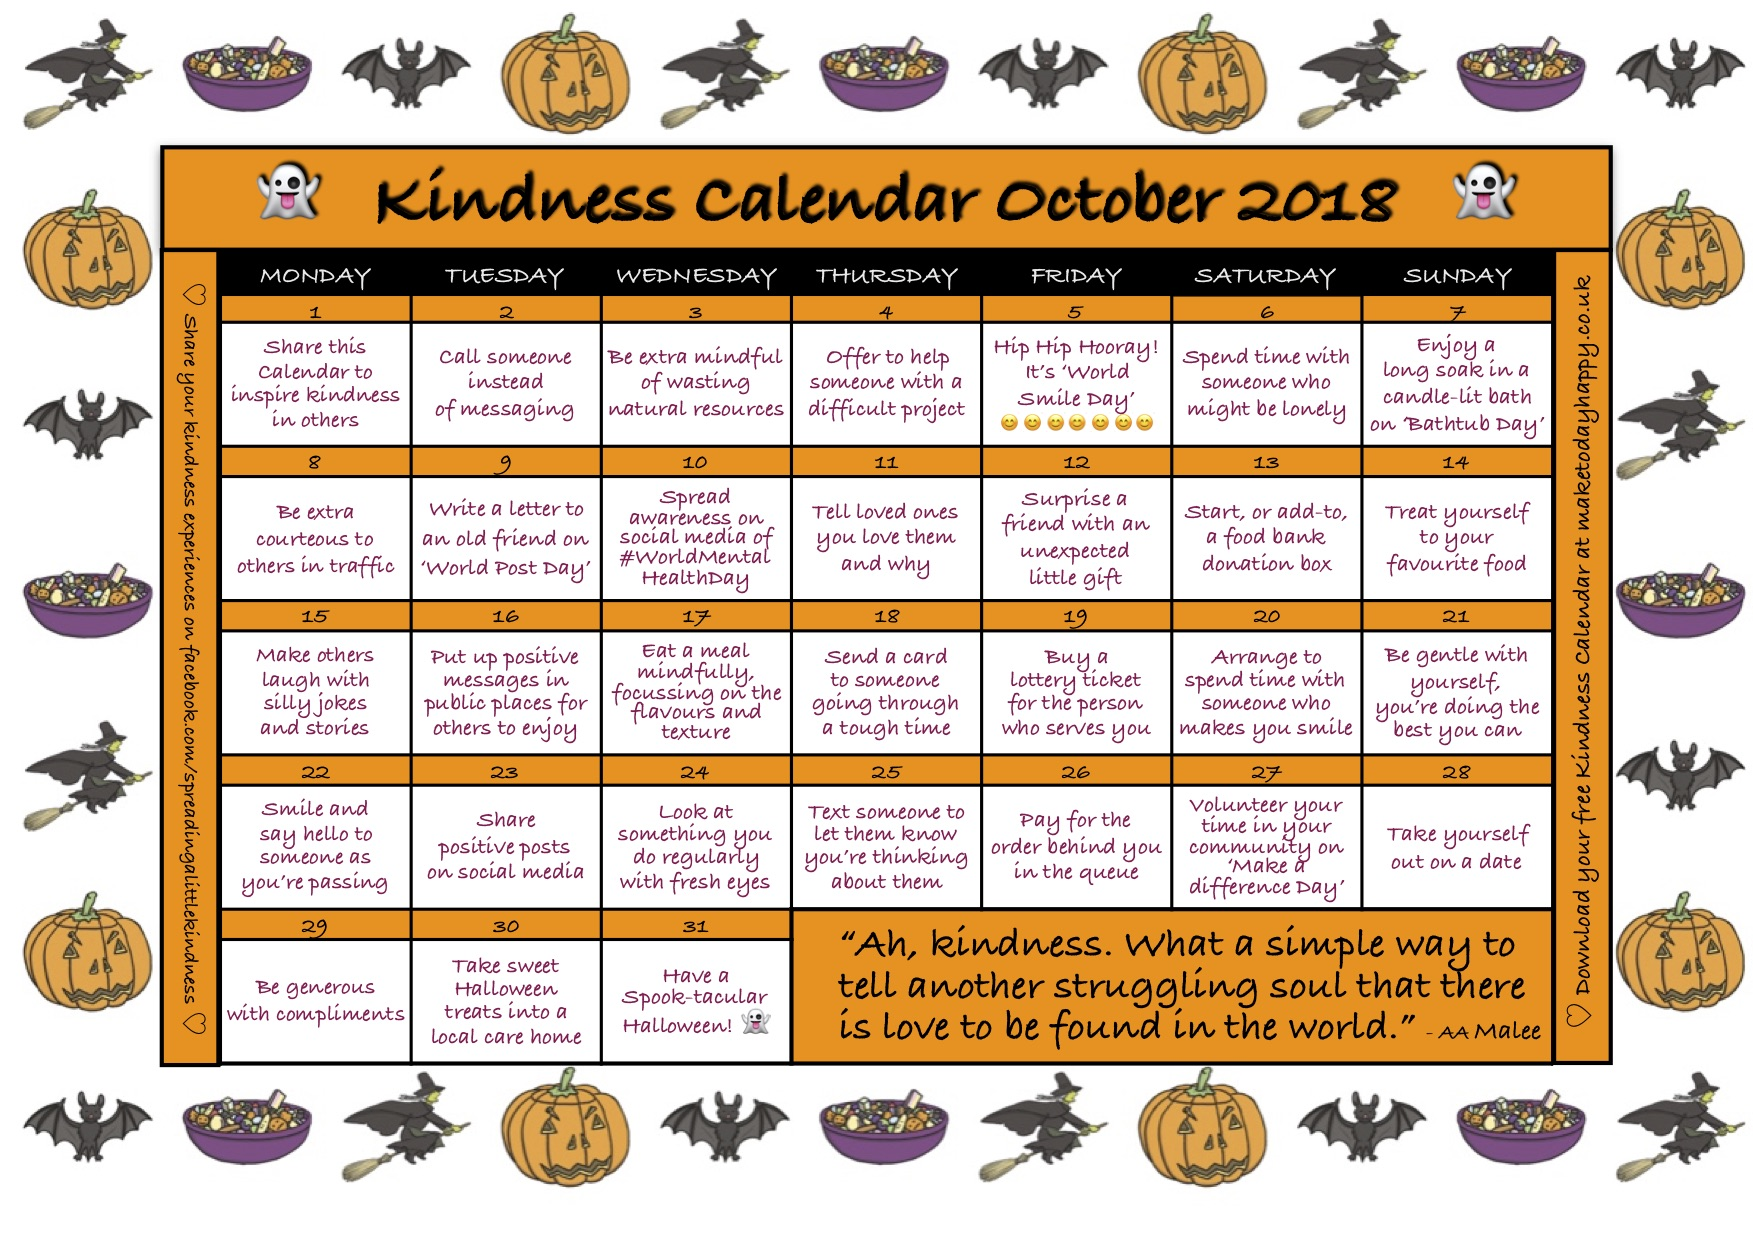 Kindness Calendar October 2018